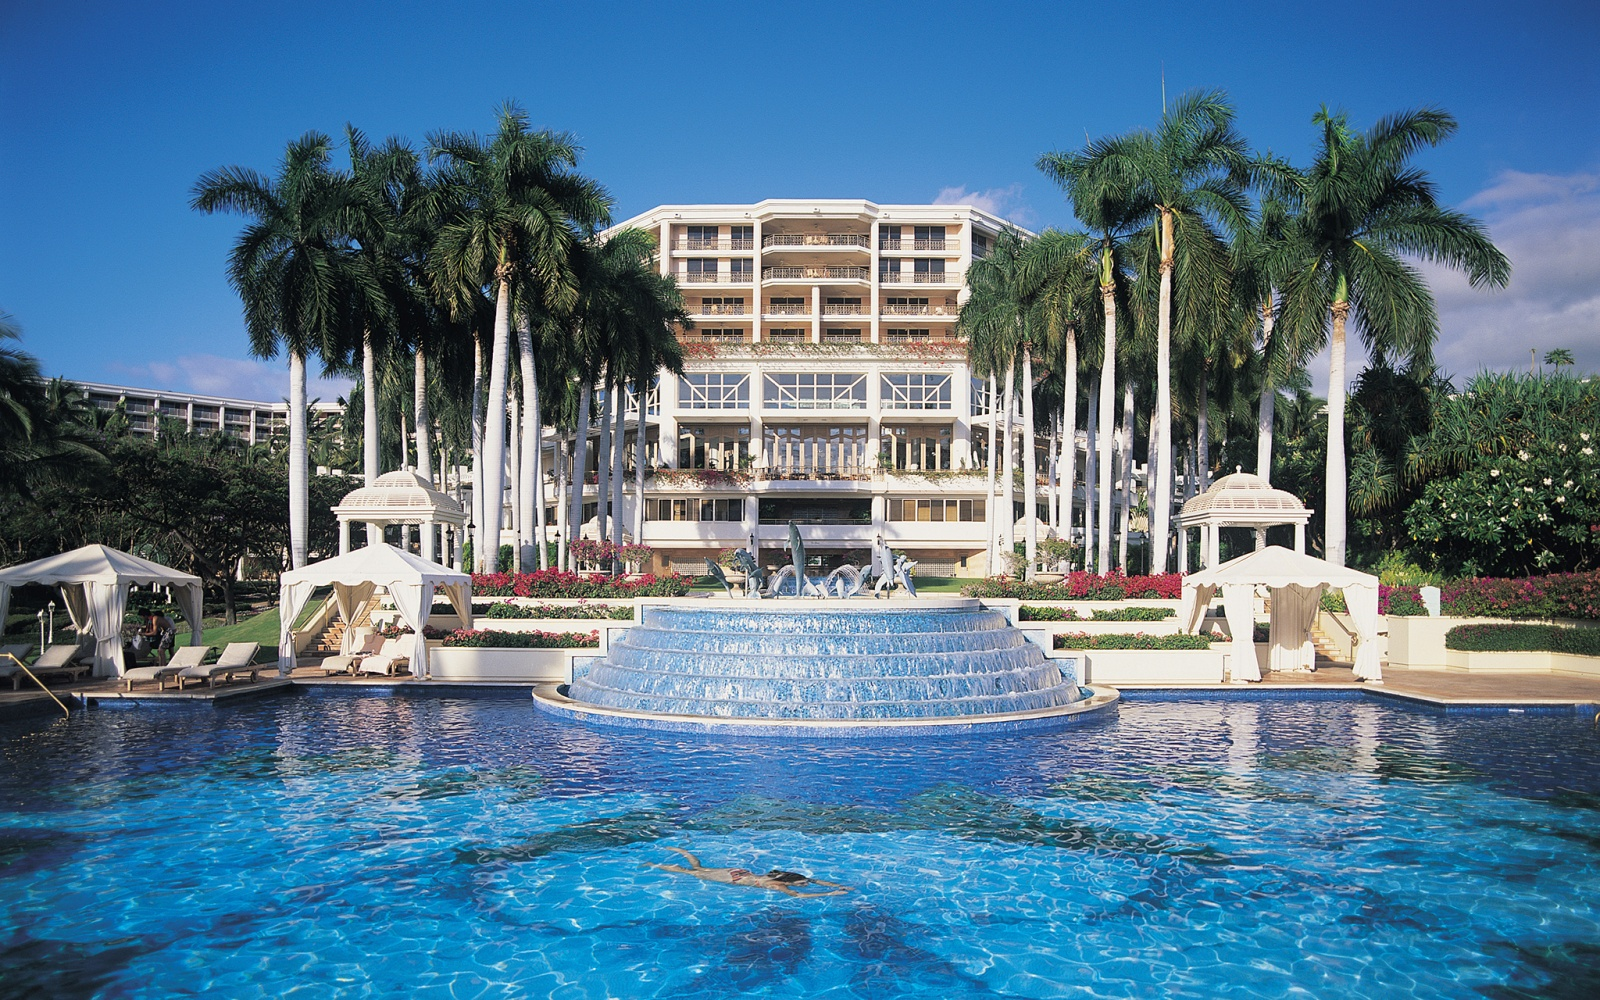 No. 14 Grand Wailea, A Waldorf Astoria Resort, HI